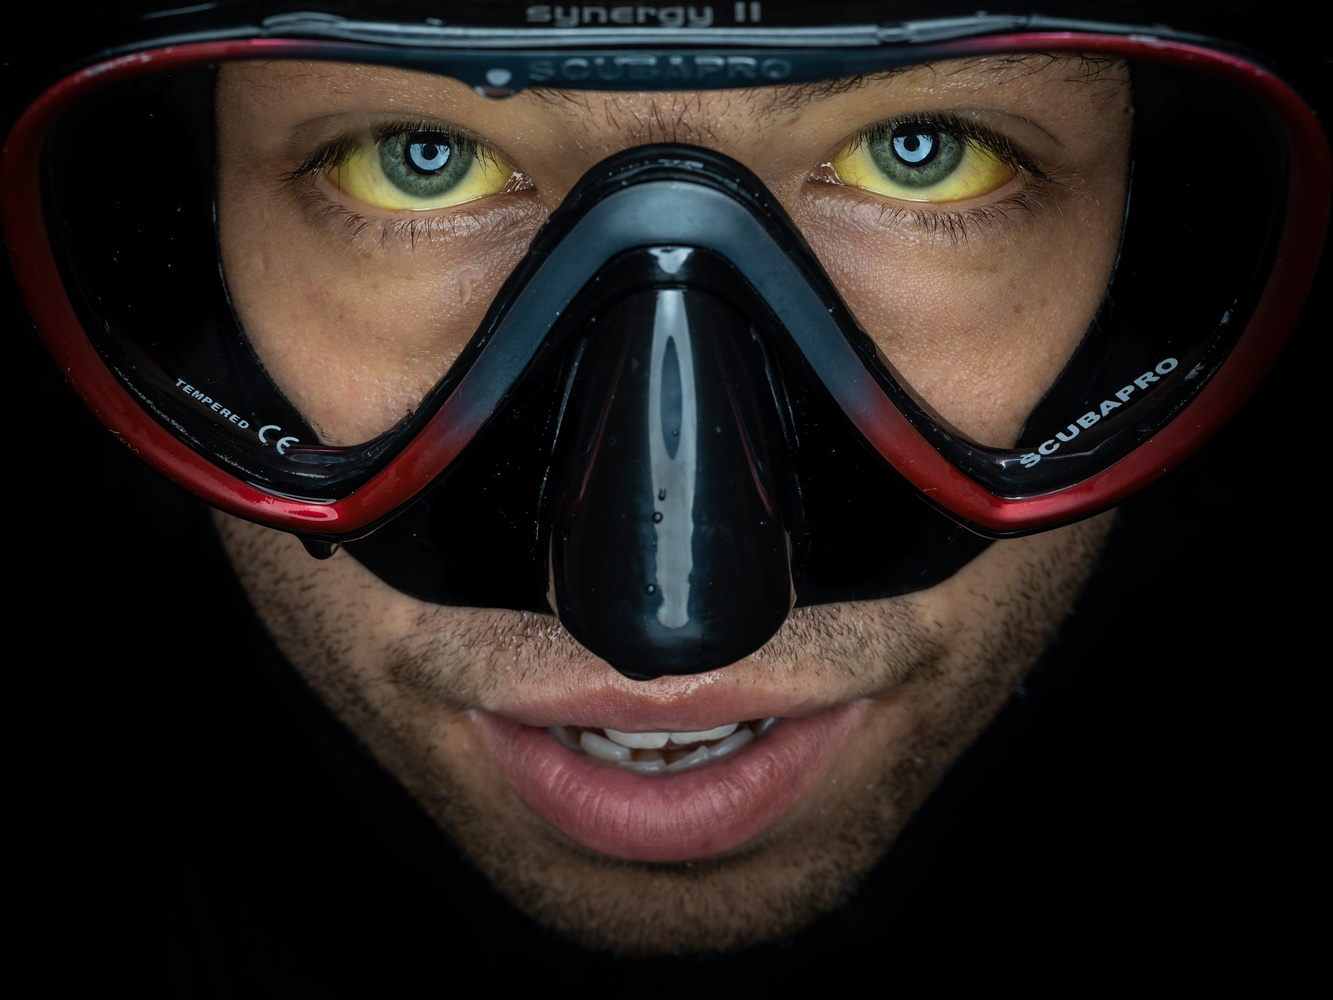 Faces of Divers - Phil Modro by Tomasz Kowalski